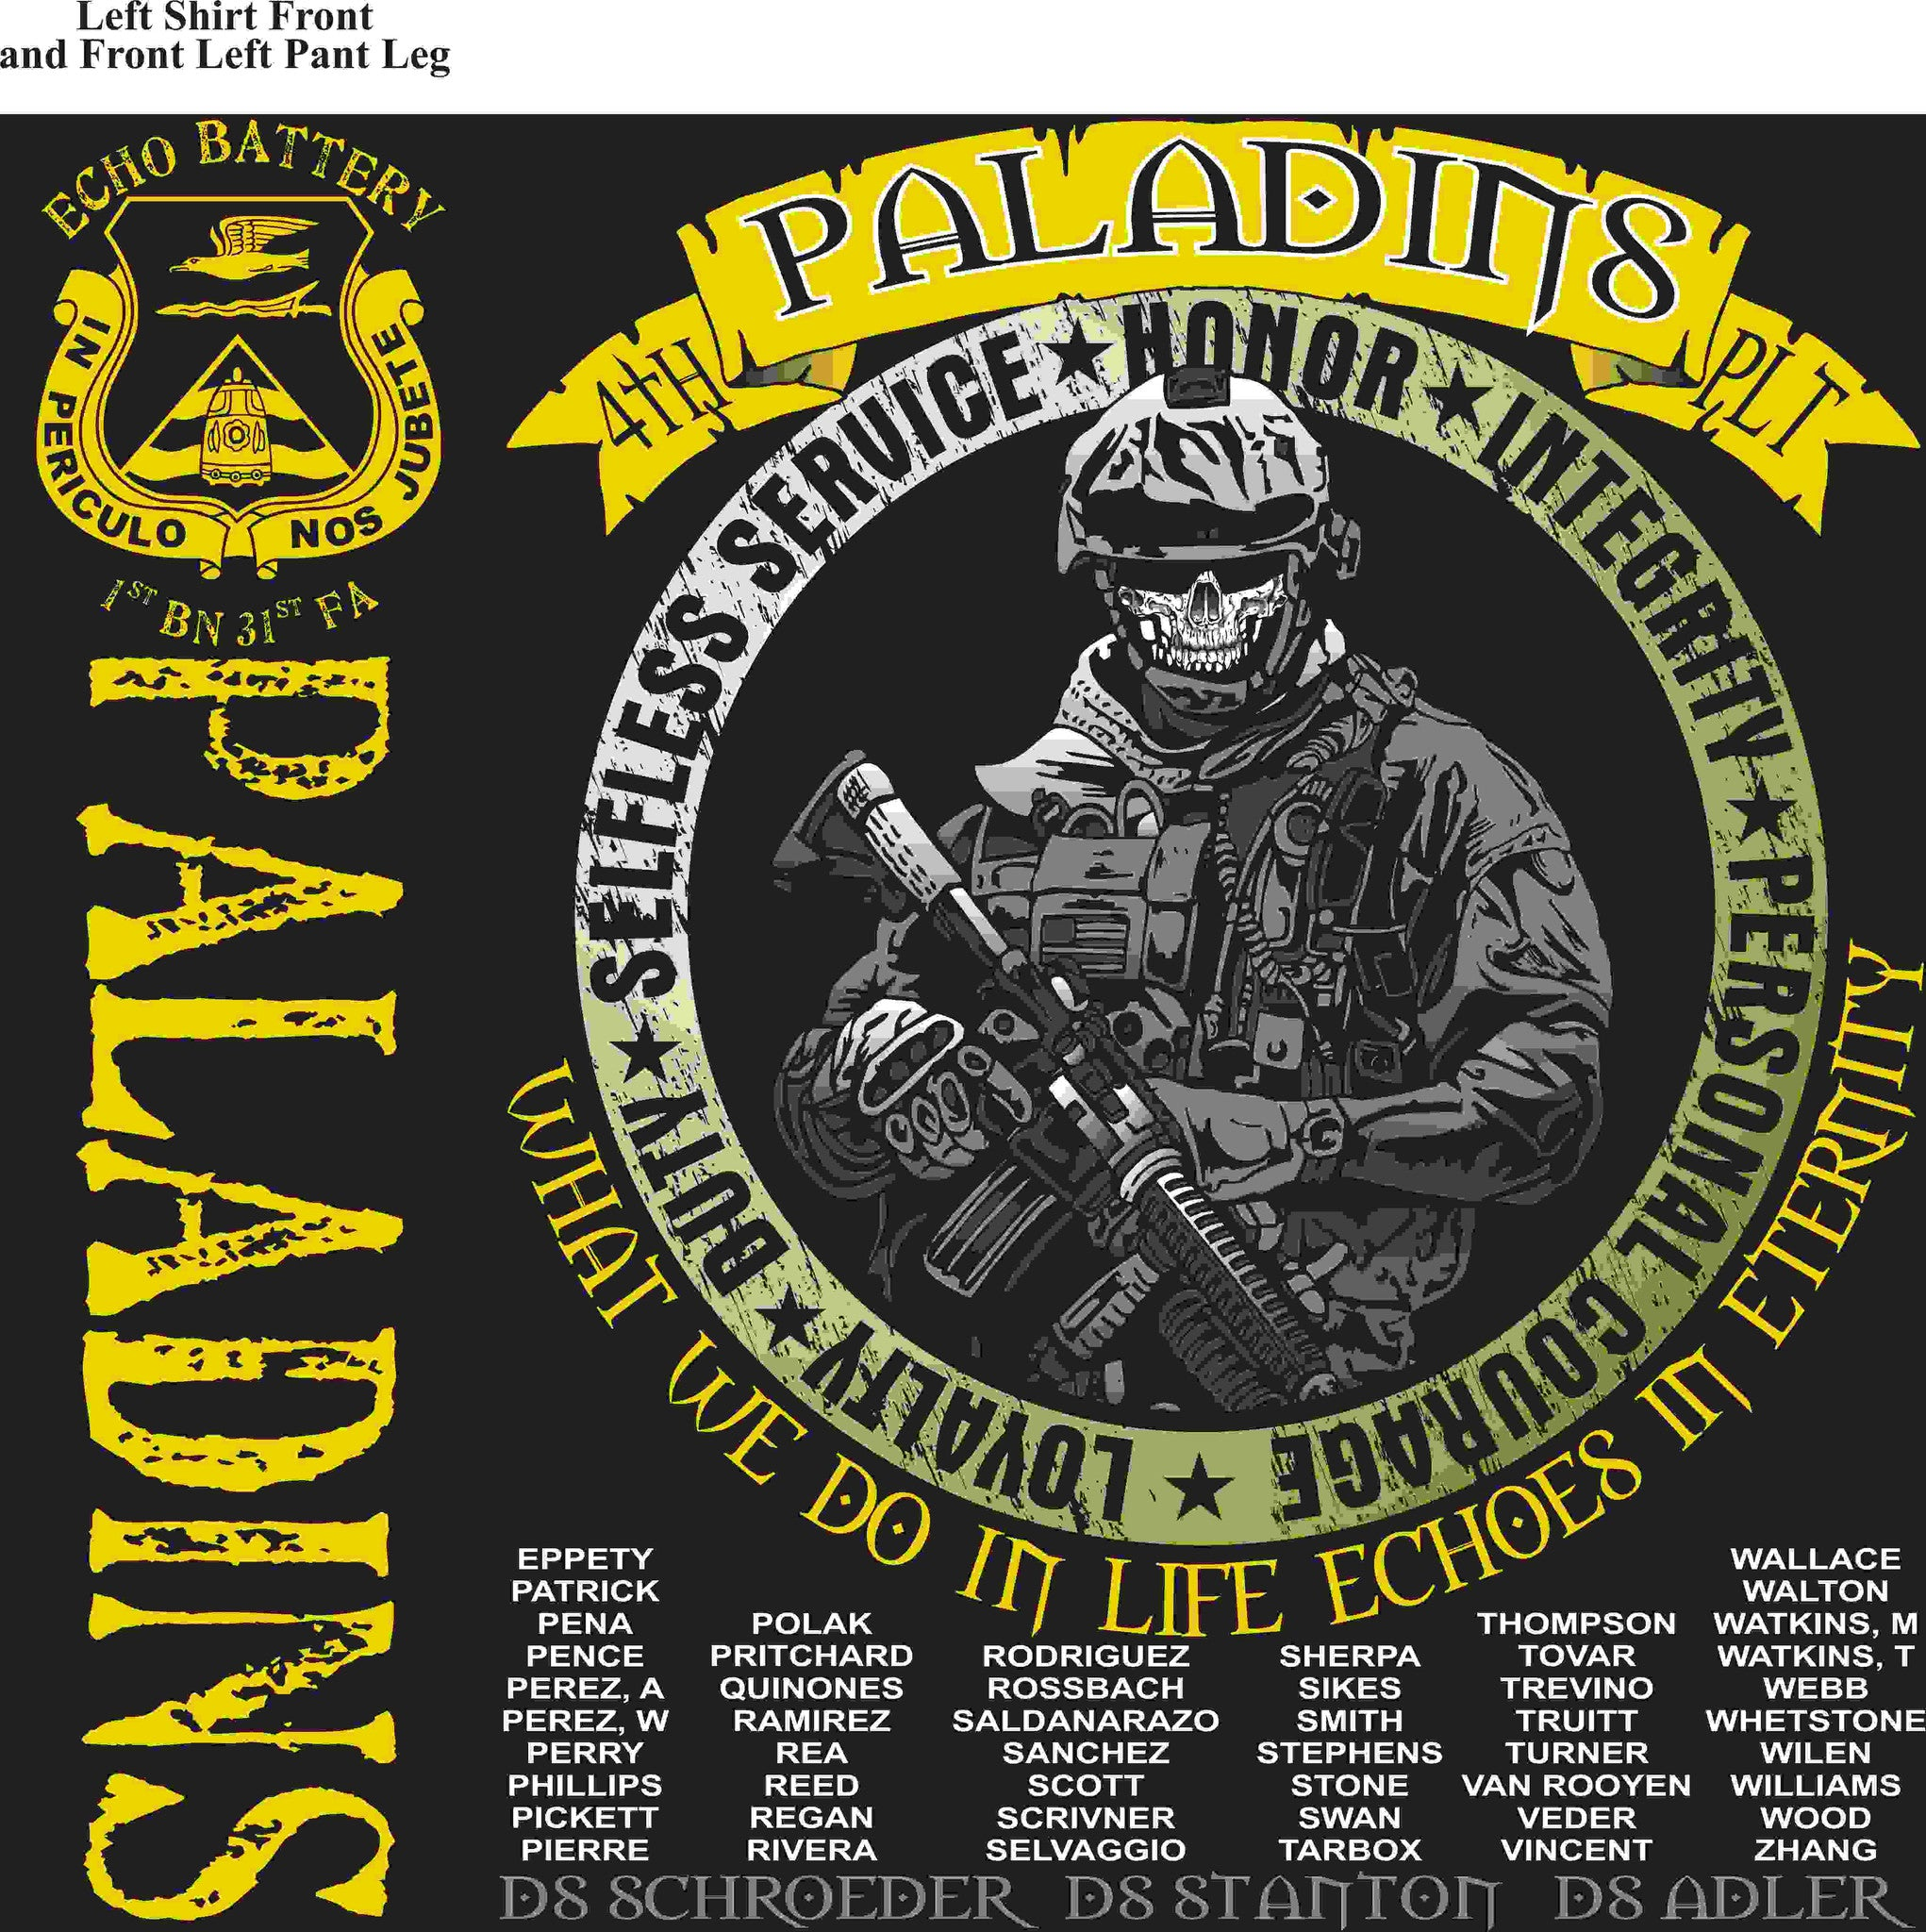 PLATOON SHIRTS (digital) ECHO 1st 31st PALADINS FEB 2016